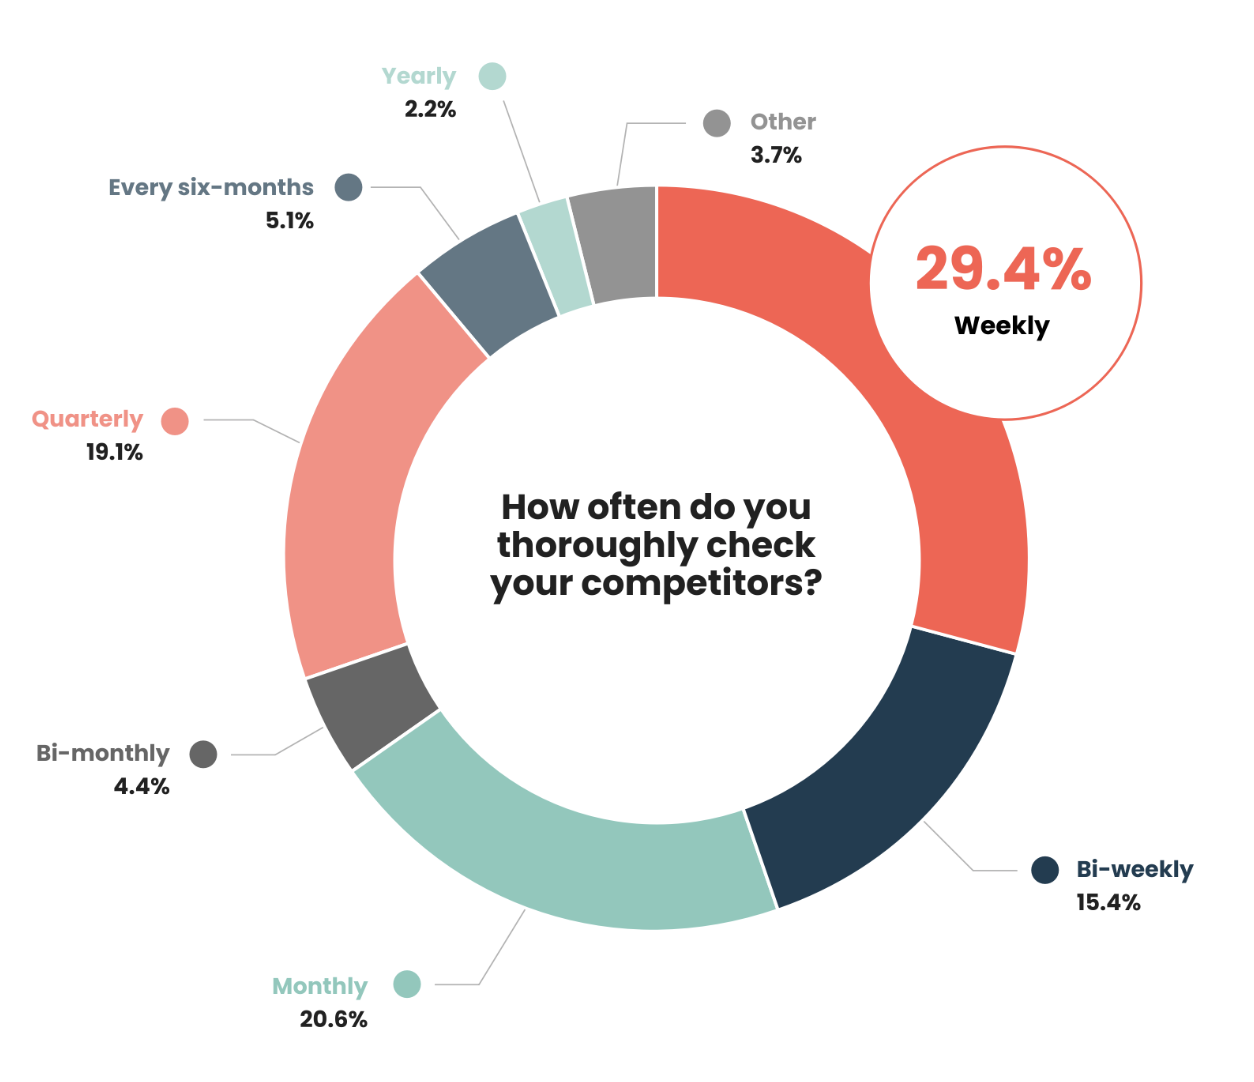 Over one-quarter of product marketers conduct competitive intelligence weekly.